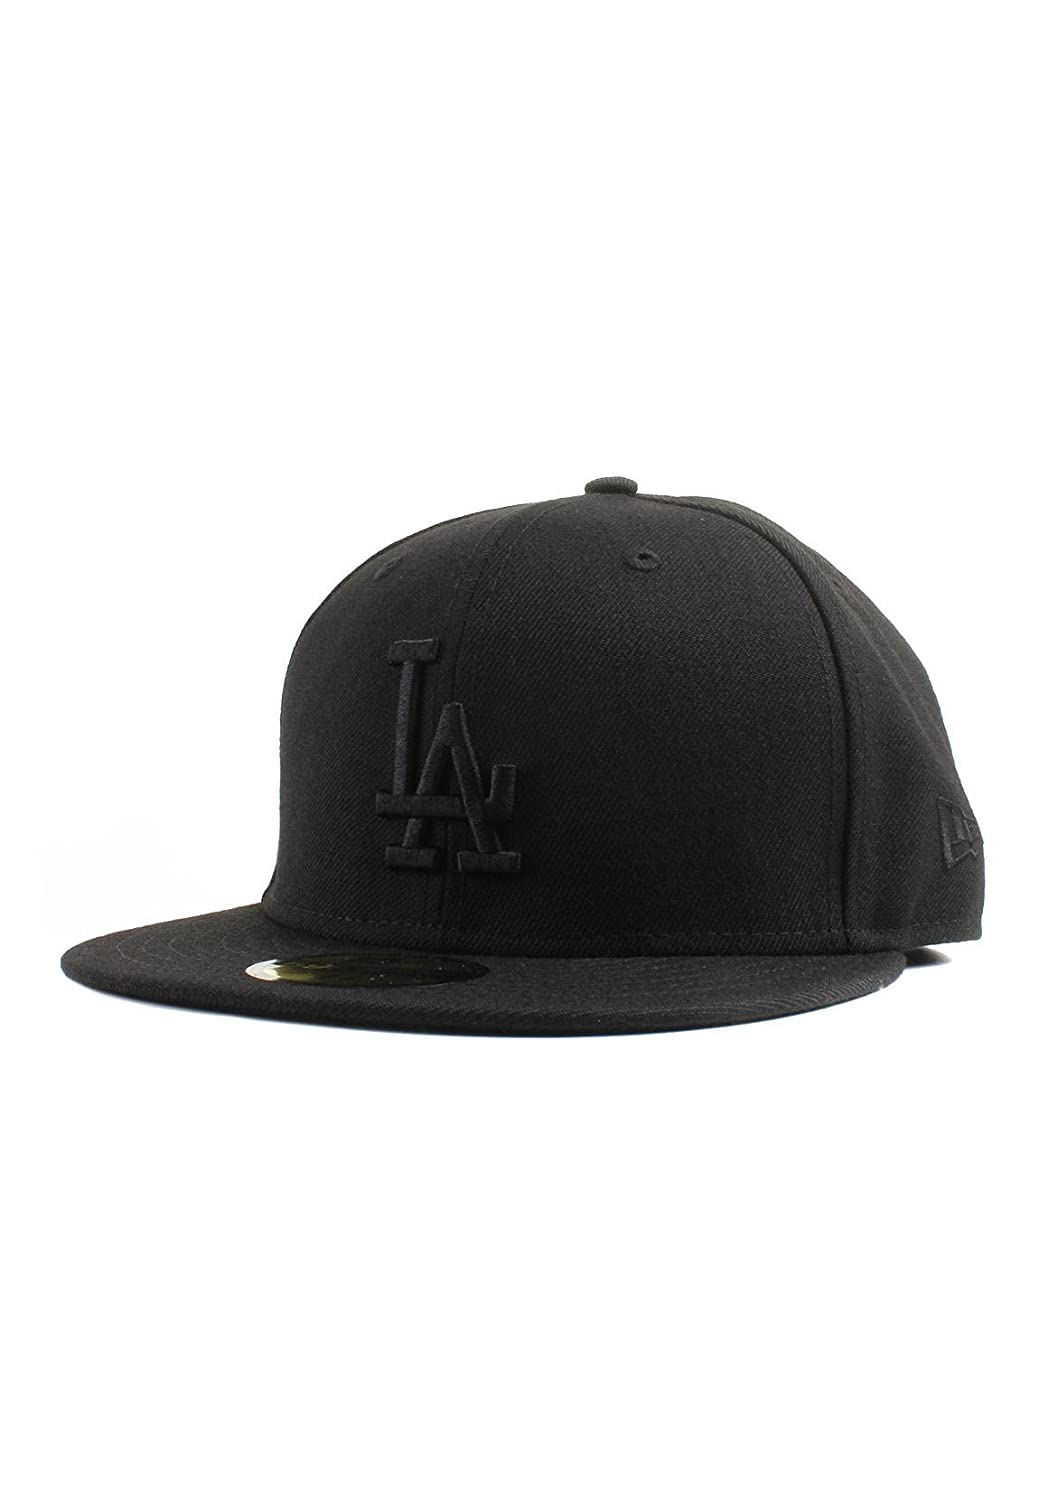 newest collection fc33b 66779 Amazon.com   New Era 59Fifty Los Angeles LA Dodgers Blackout Fitted Hat  (Black) Men s Cap   Sports   Outdoors